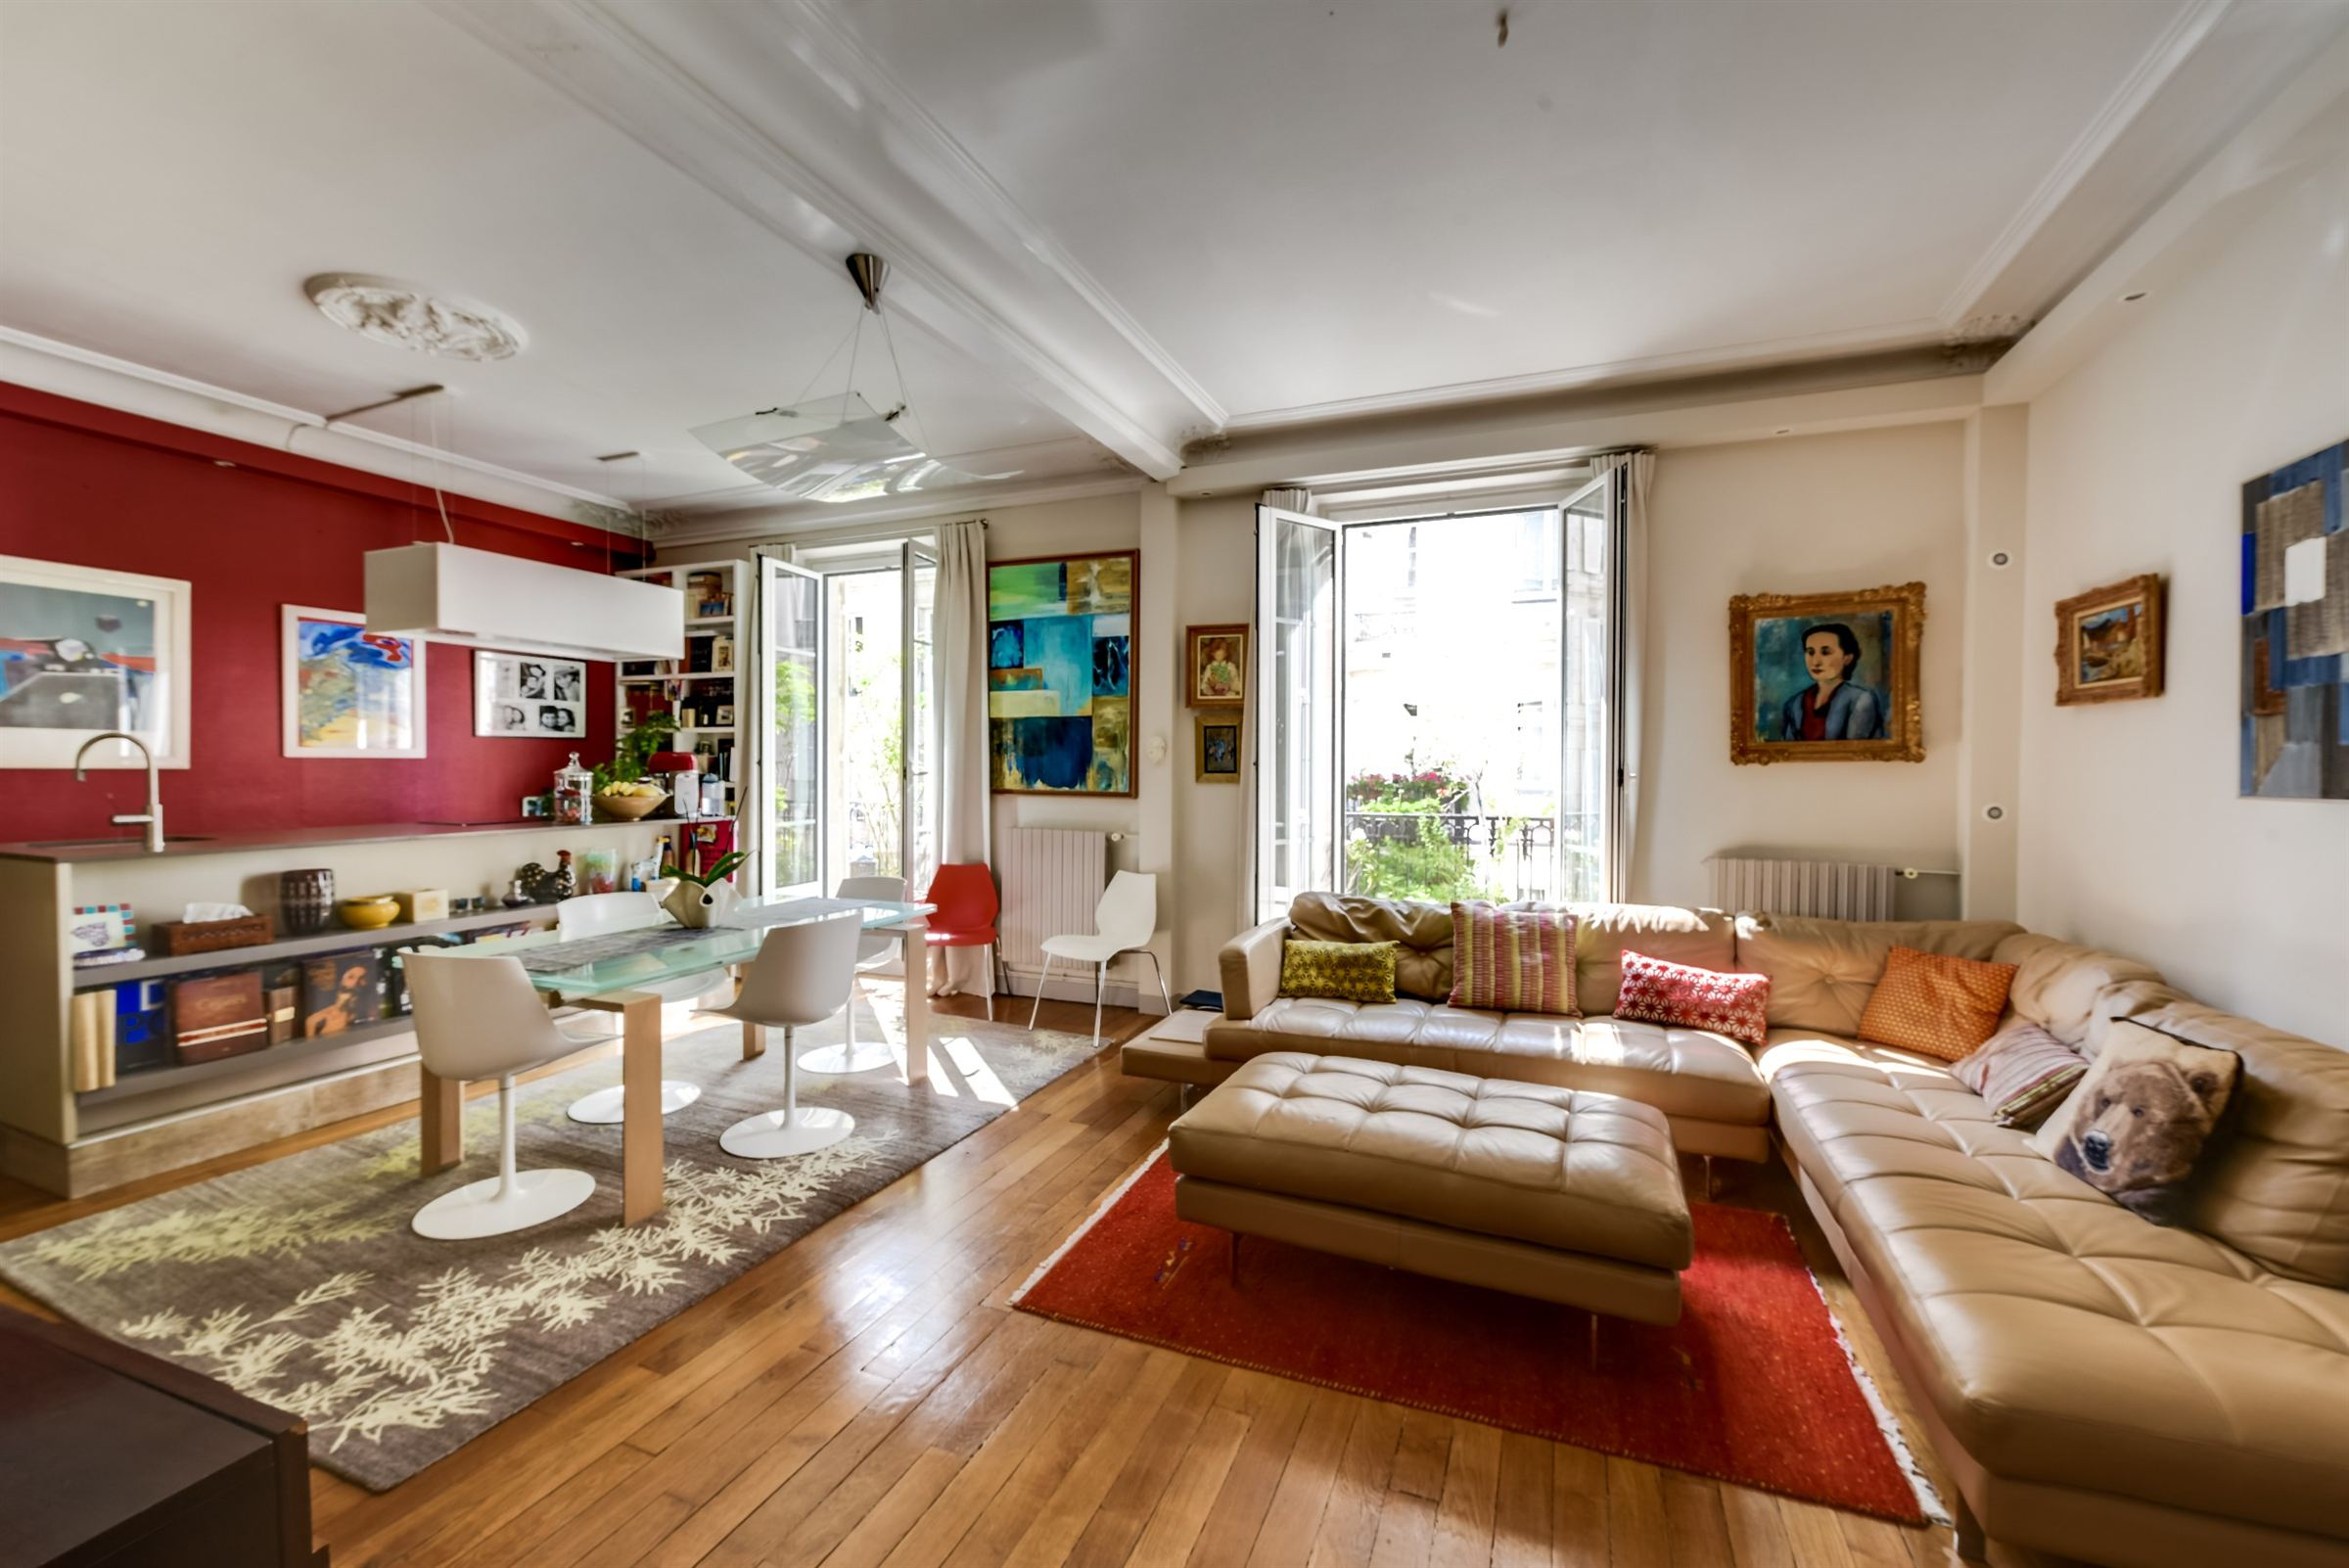 sales property at A 86 sq.m apartment for sale, Neuilly - Longchamp, 3 bedrooms